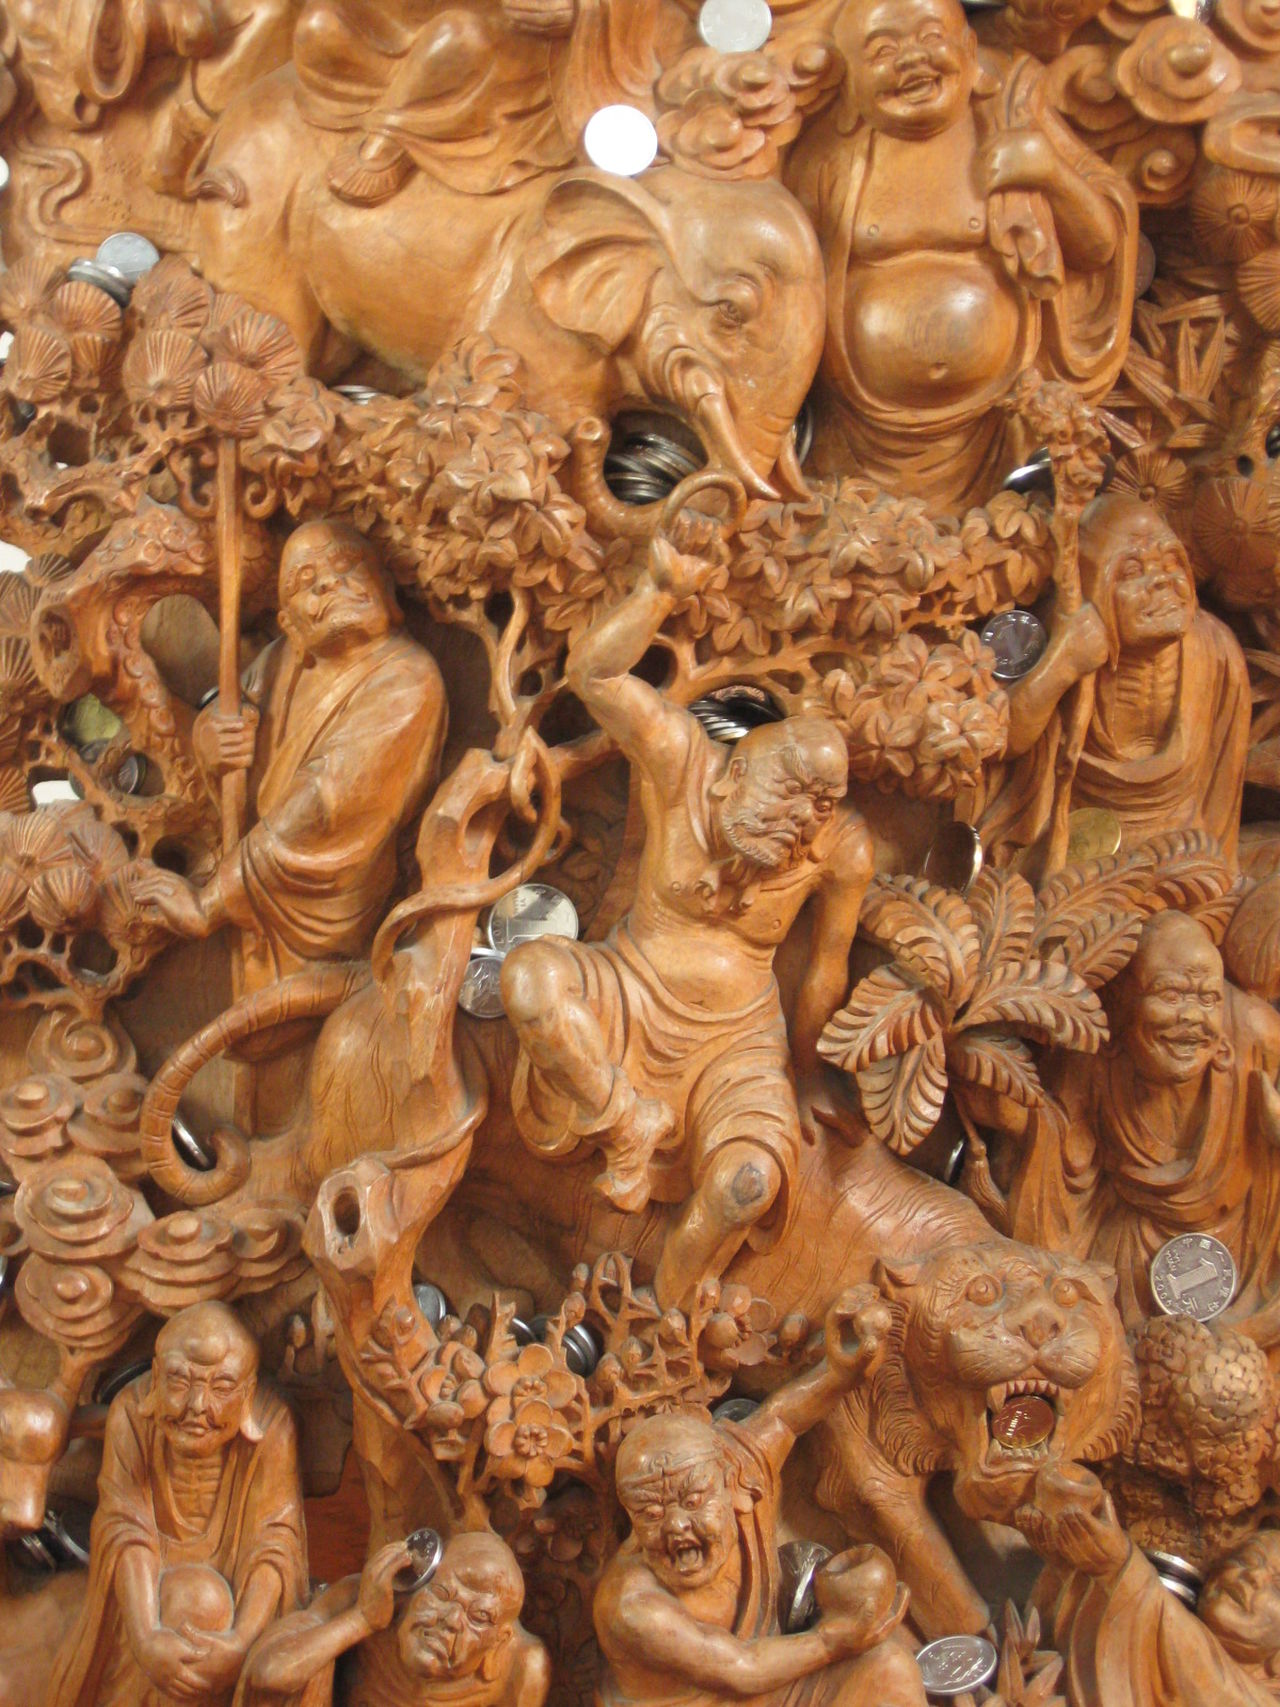 Religion Art And Craft Ornate Tradition Cultures No People Full Frame Spirituality Statue Indoors  Close-up Day Beijing China Charm Lucky Wish Wood Wood Art ArtWork